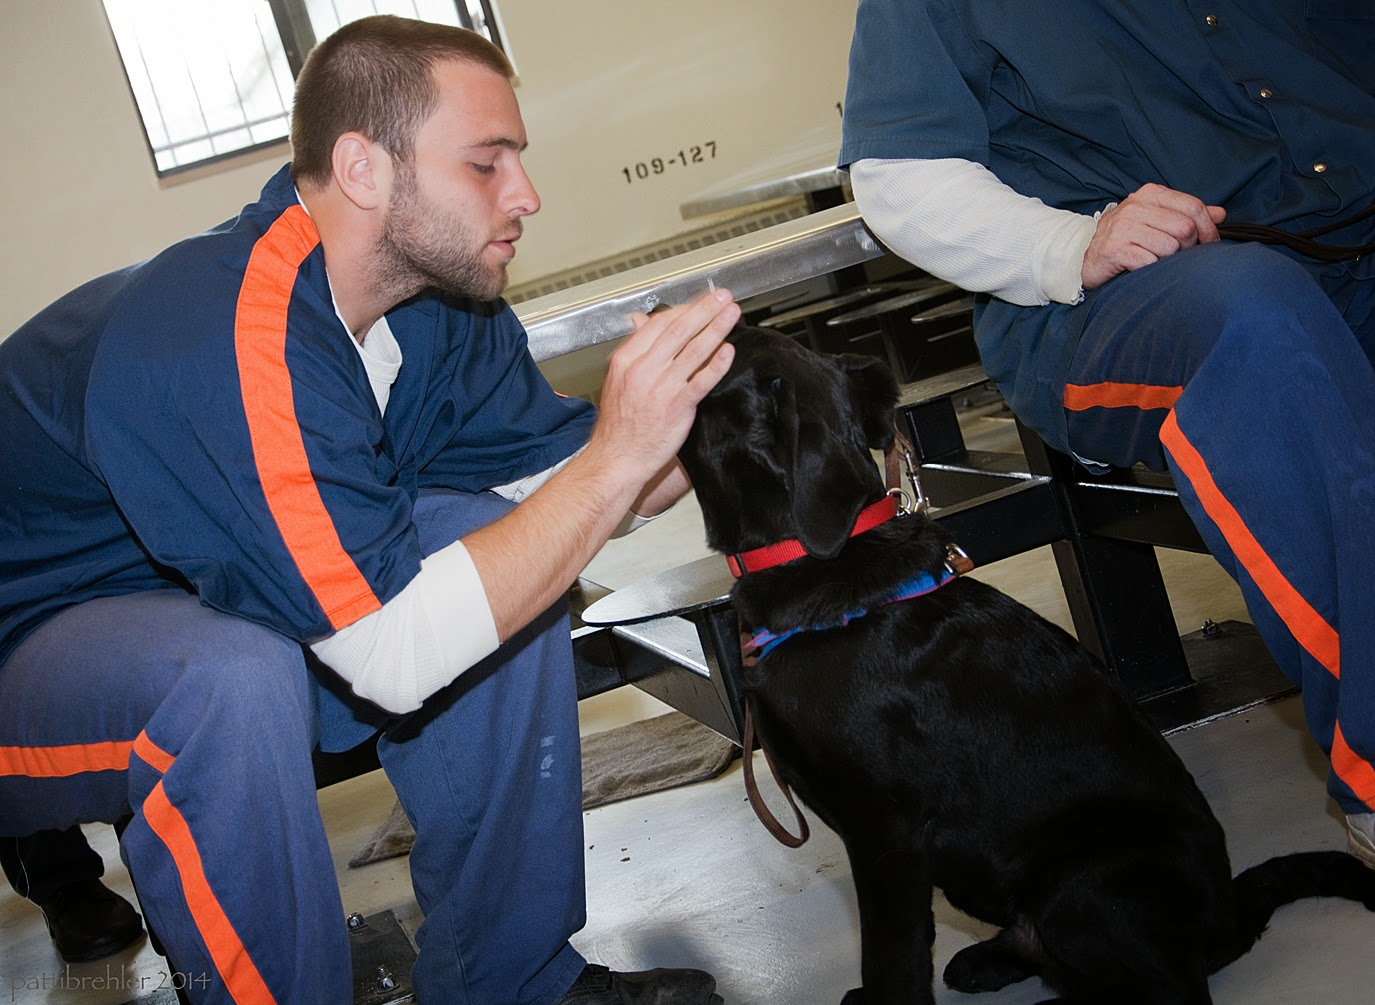 A man dressed in the blue prison uniform is sitting on the lunch table stool and bending to the right toward a black lab puppy. The man has his hands on the puppy's snout and is lifting the puppy's jowls to check his teeth. The puppy is sitting down facing the man. There is another man sitting on a stool in the backgrond on the right side, but only his right side is visible.